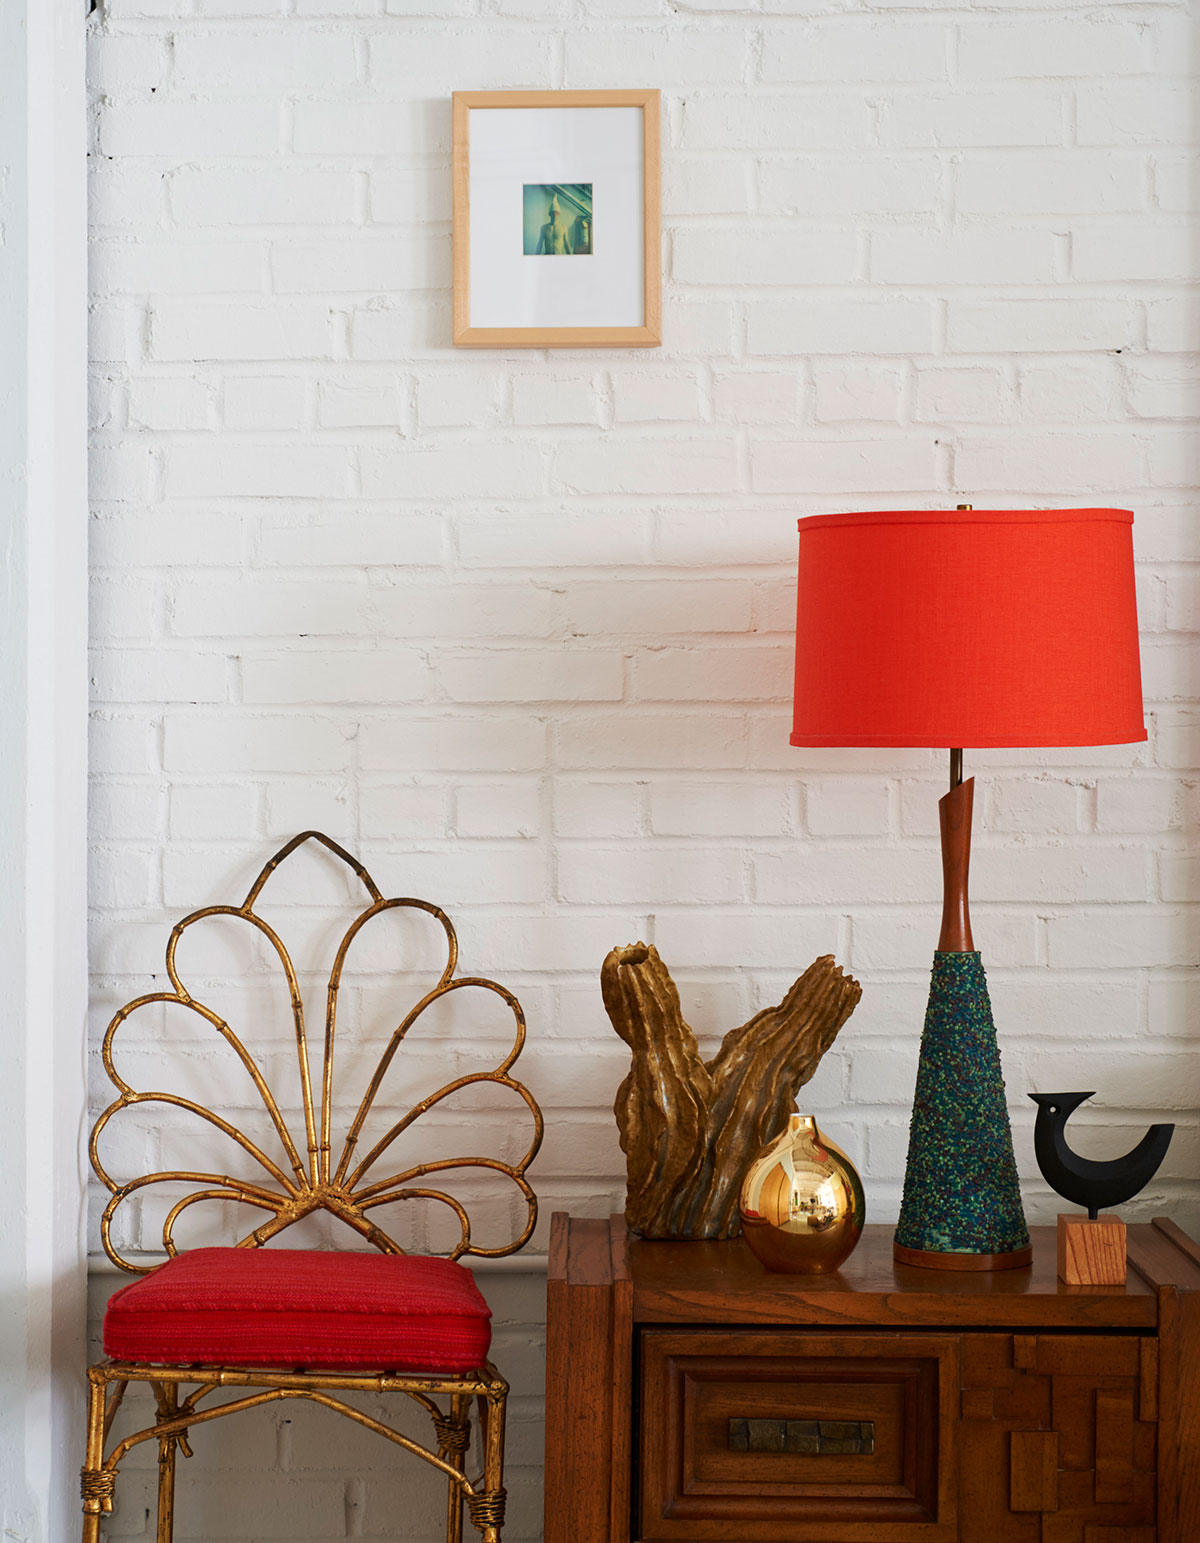 Interior vignette with red lamp and chair